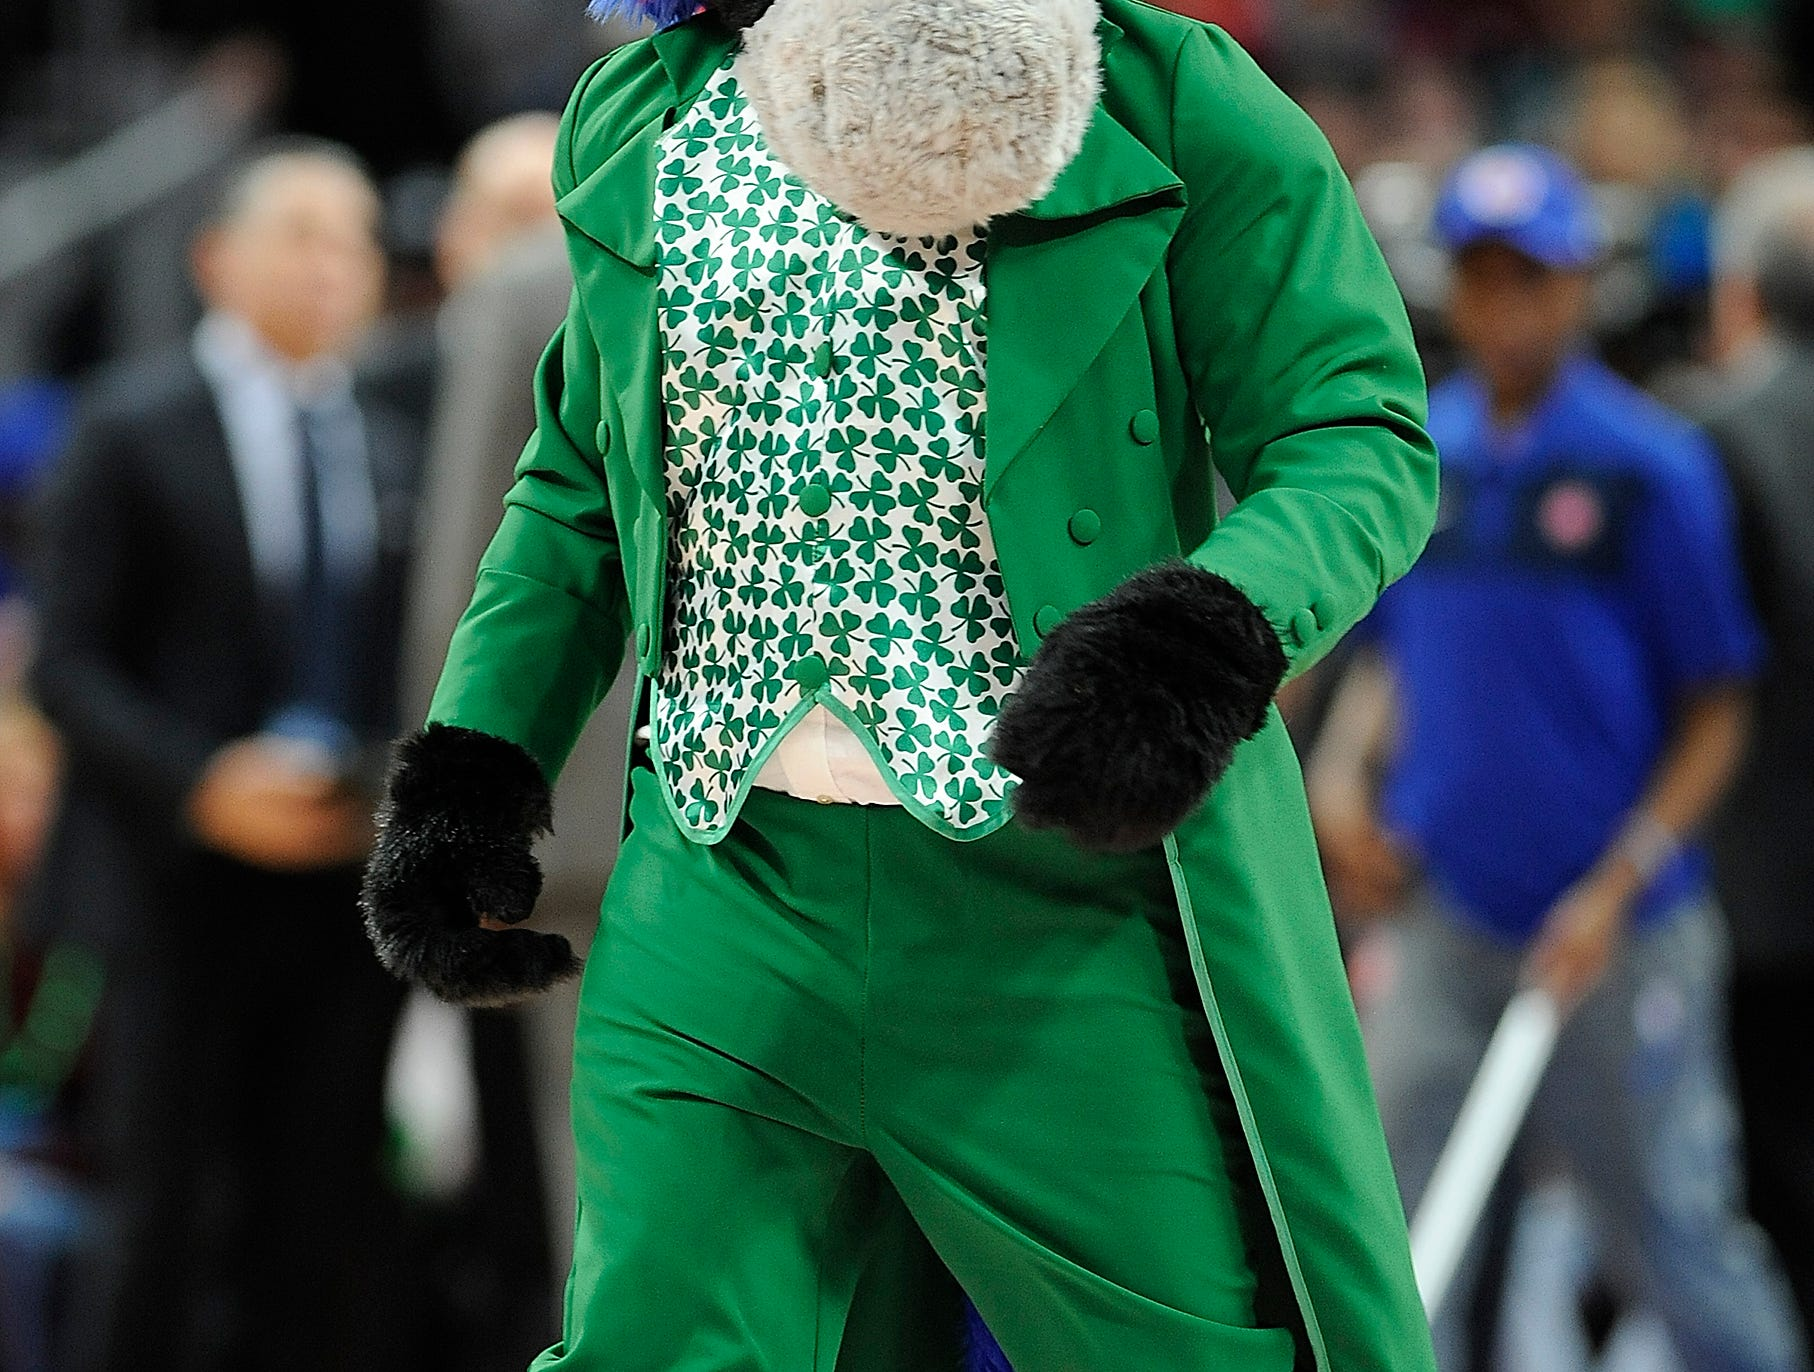 Hopper wore his St. Patrick's Day outfit for the game.